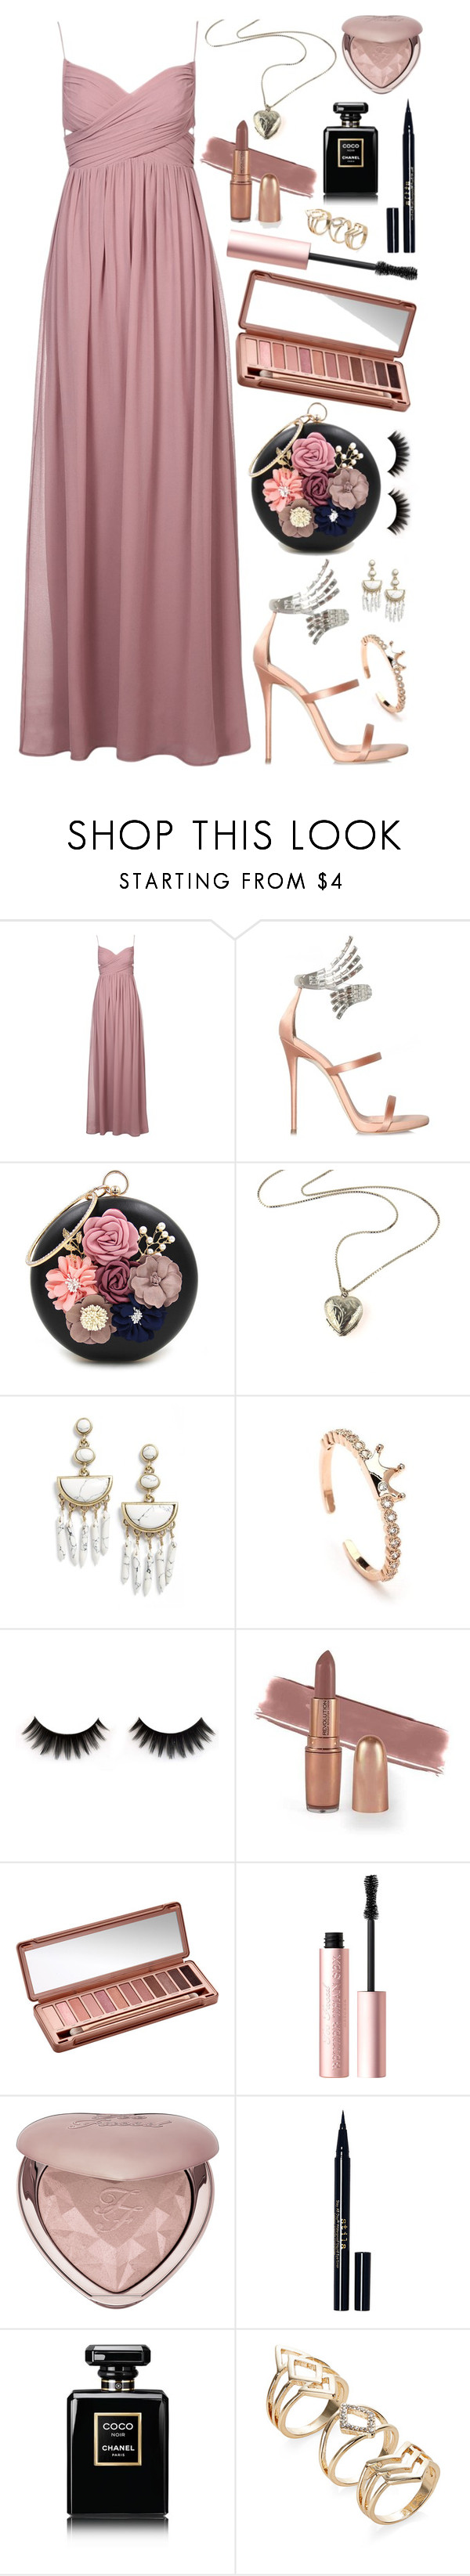 """Swings and roundabouts"" by tigerlily789 ❤ liked on Polyvore featuring Giuseppe Zanotti, WithChic, BaubleBar, Urban Decay, Too Faced Cosmetics, Stila and Chanel"